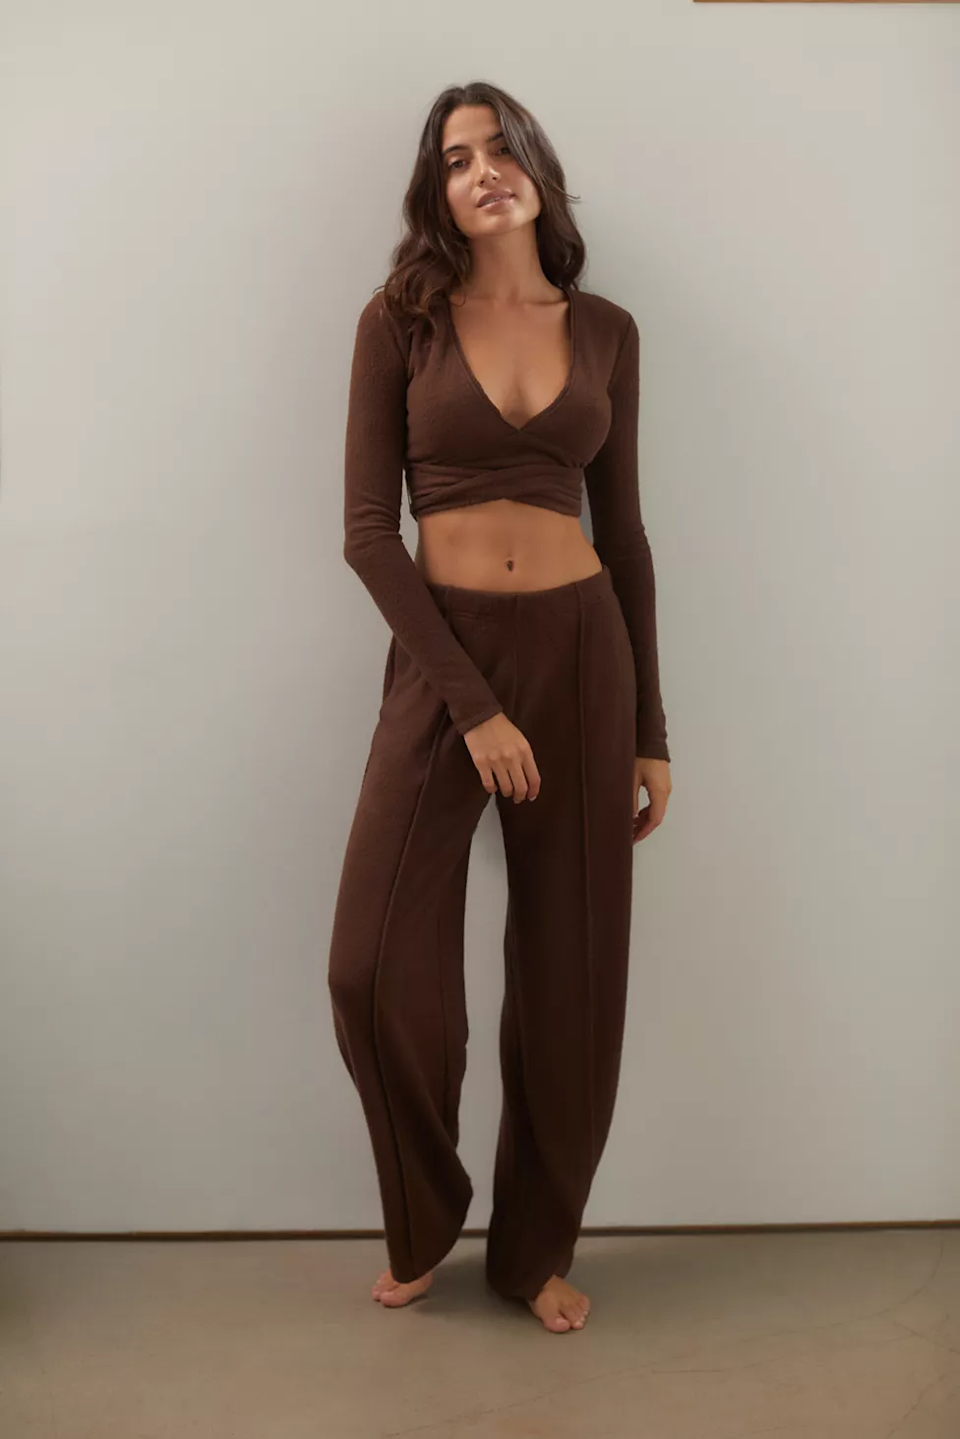 """<br><br><strong>Out From Under</strong> Edith Fleece Straight Lounge Pant, $, available at <a href=""""https://go.skimresources.com/?id=30283X879131&url=https%3A%2F%2Fwww.urbanoutfitters.com%2Fshop%2Fout-from-under-edith-fleece-straight-lounge-pant"""" rel=""""nofollow noopener"""" target=""""_blank"""" data-ylk=""""slk:Urban Outfitters"""" class=""""link rapid-noclick-resp"""">Urban Outfitters</a>"""